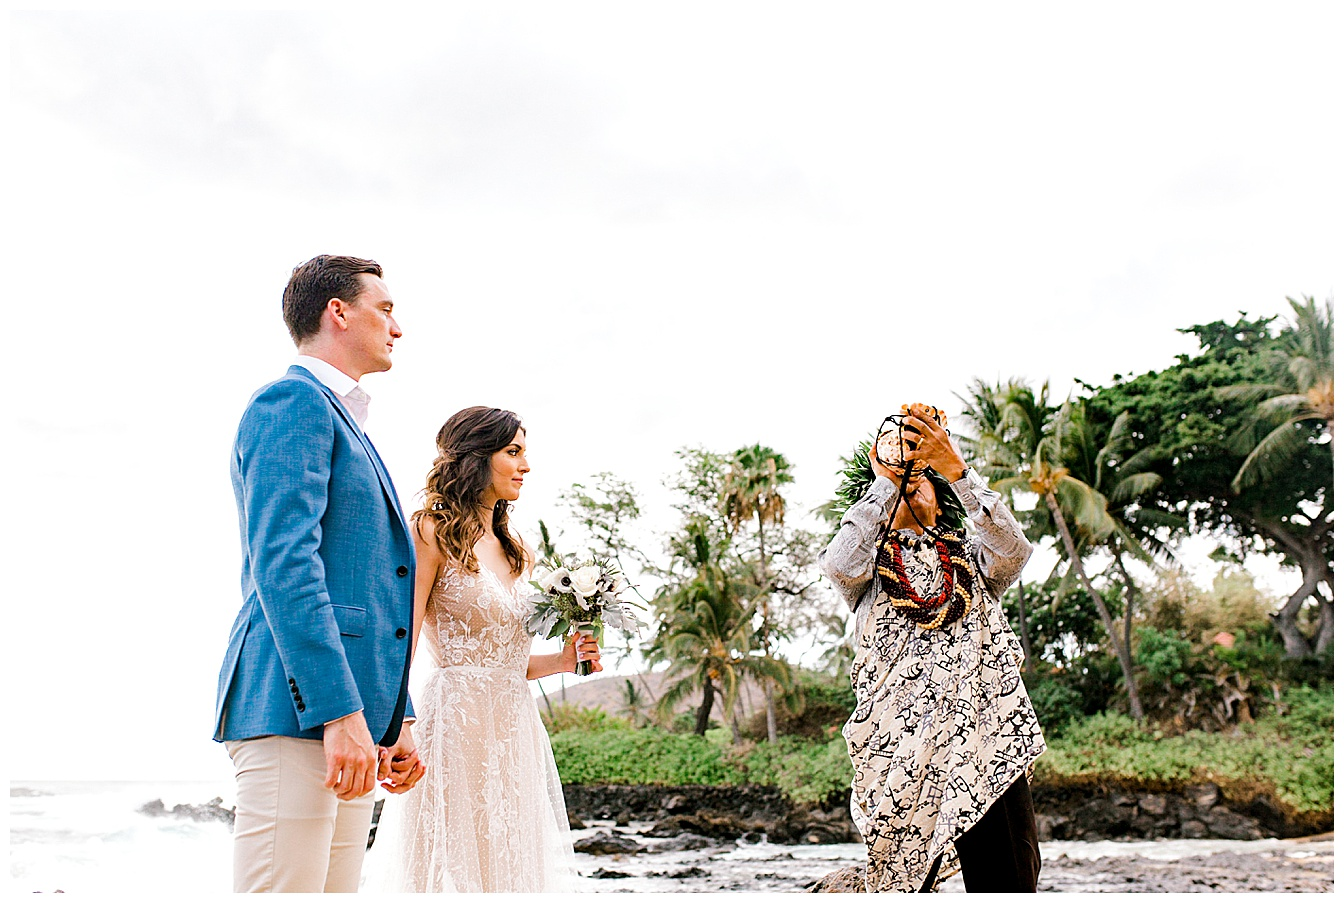 Intimate Wedding Collections starting at $1400 -